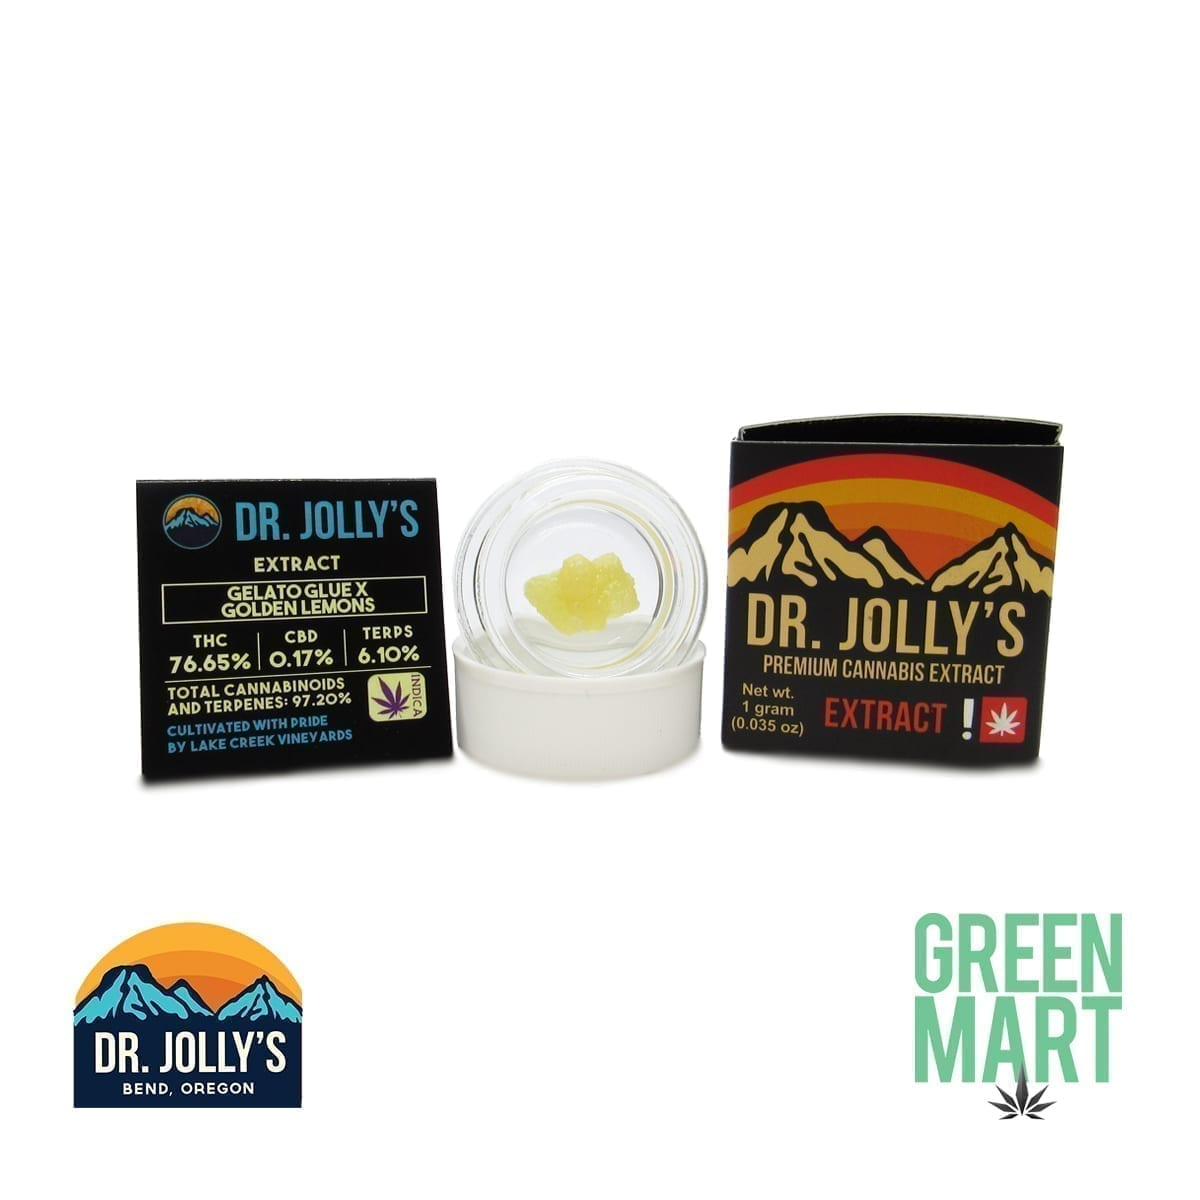 Dr. Jolly's Extracts - Gelato Glue X Golden Lemons